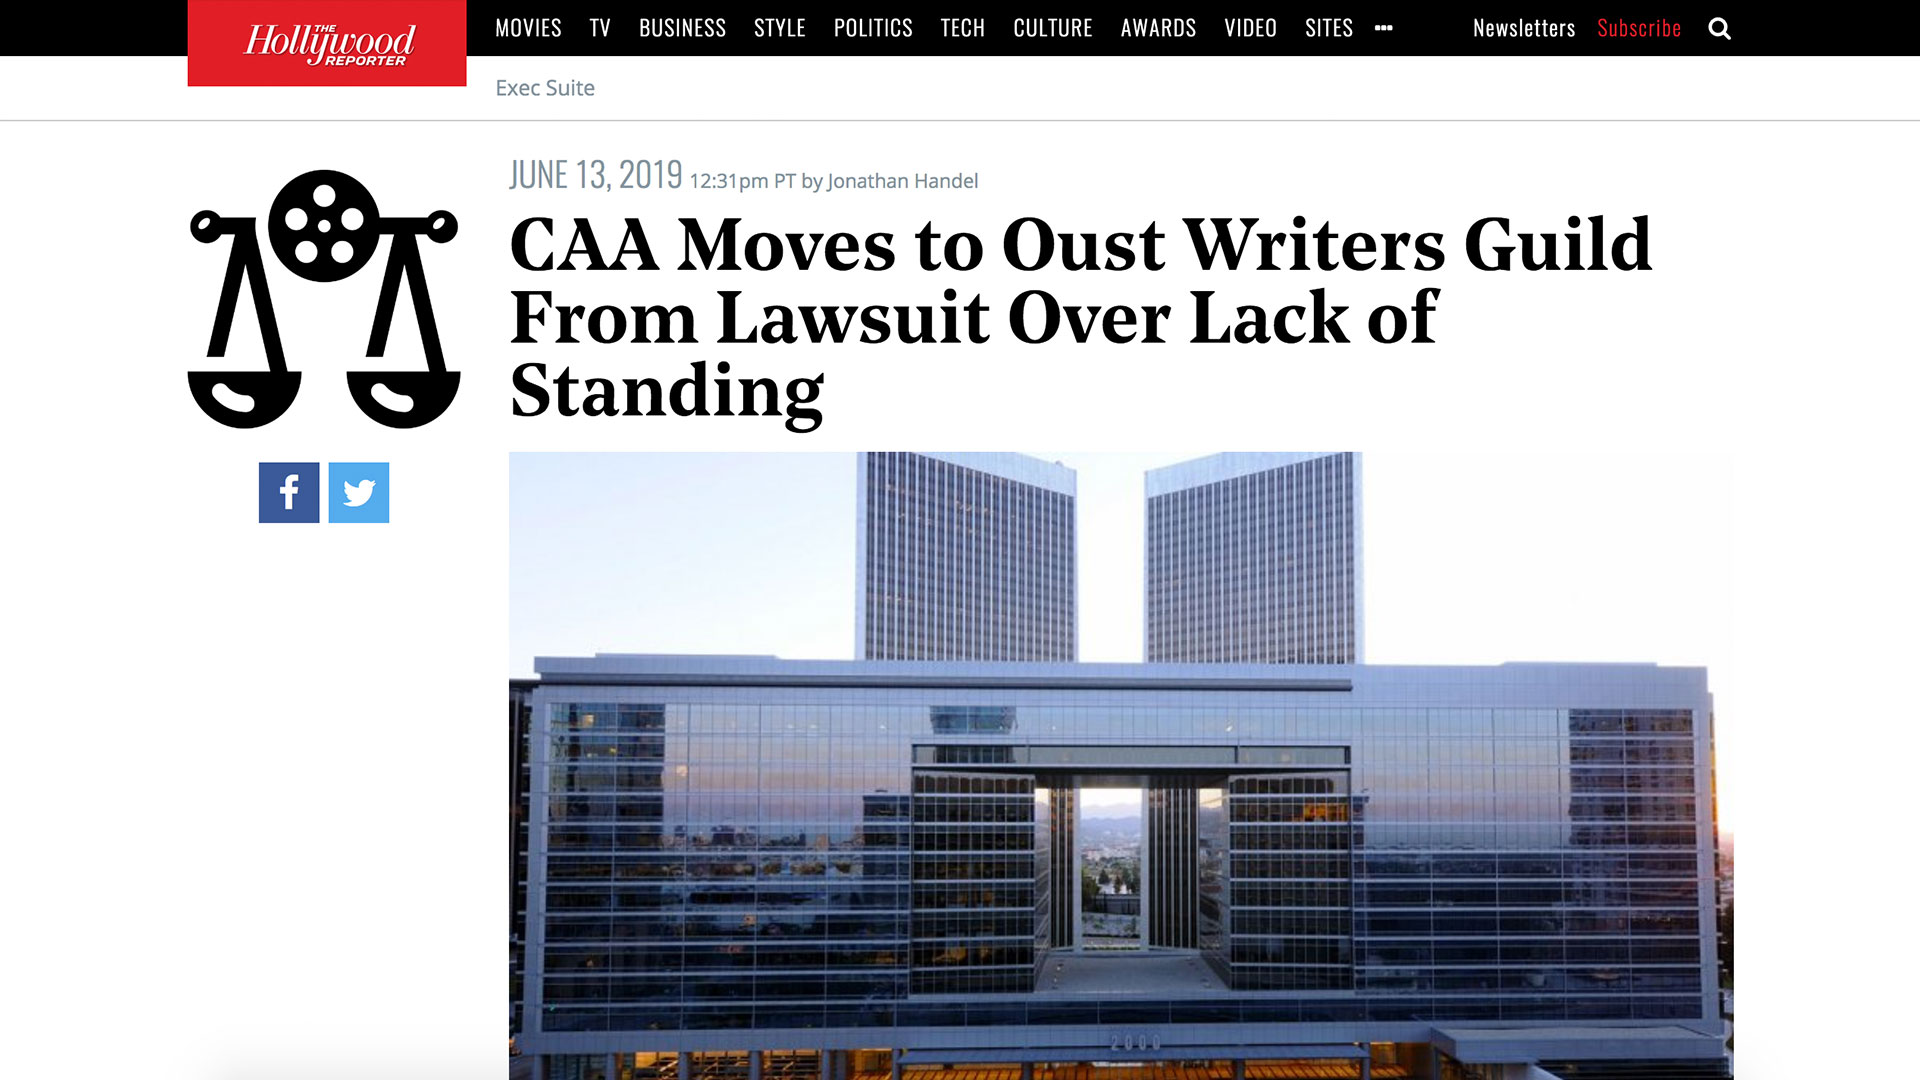 Fairness Rocks News CAA Moves to Oust Writers Guild From Lawsuit Over Lack of Standing